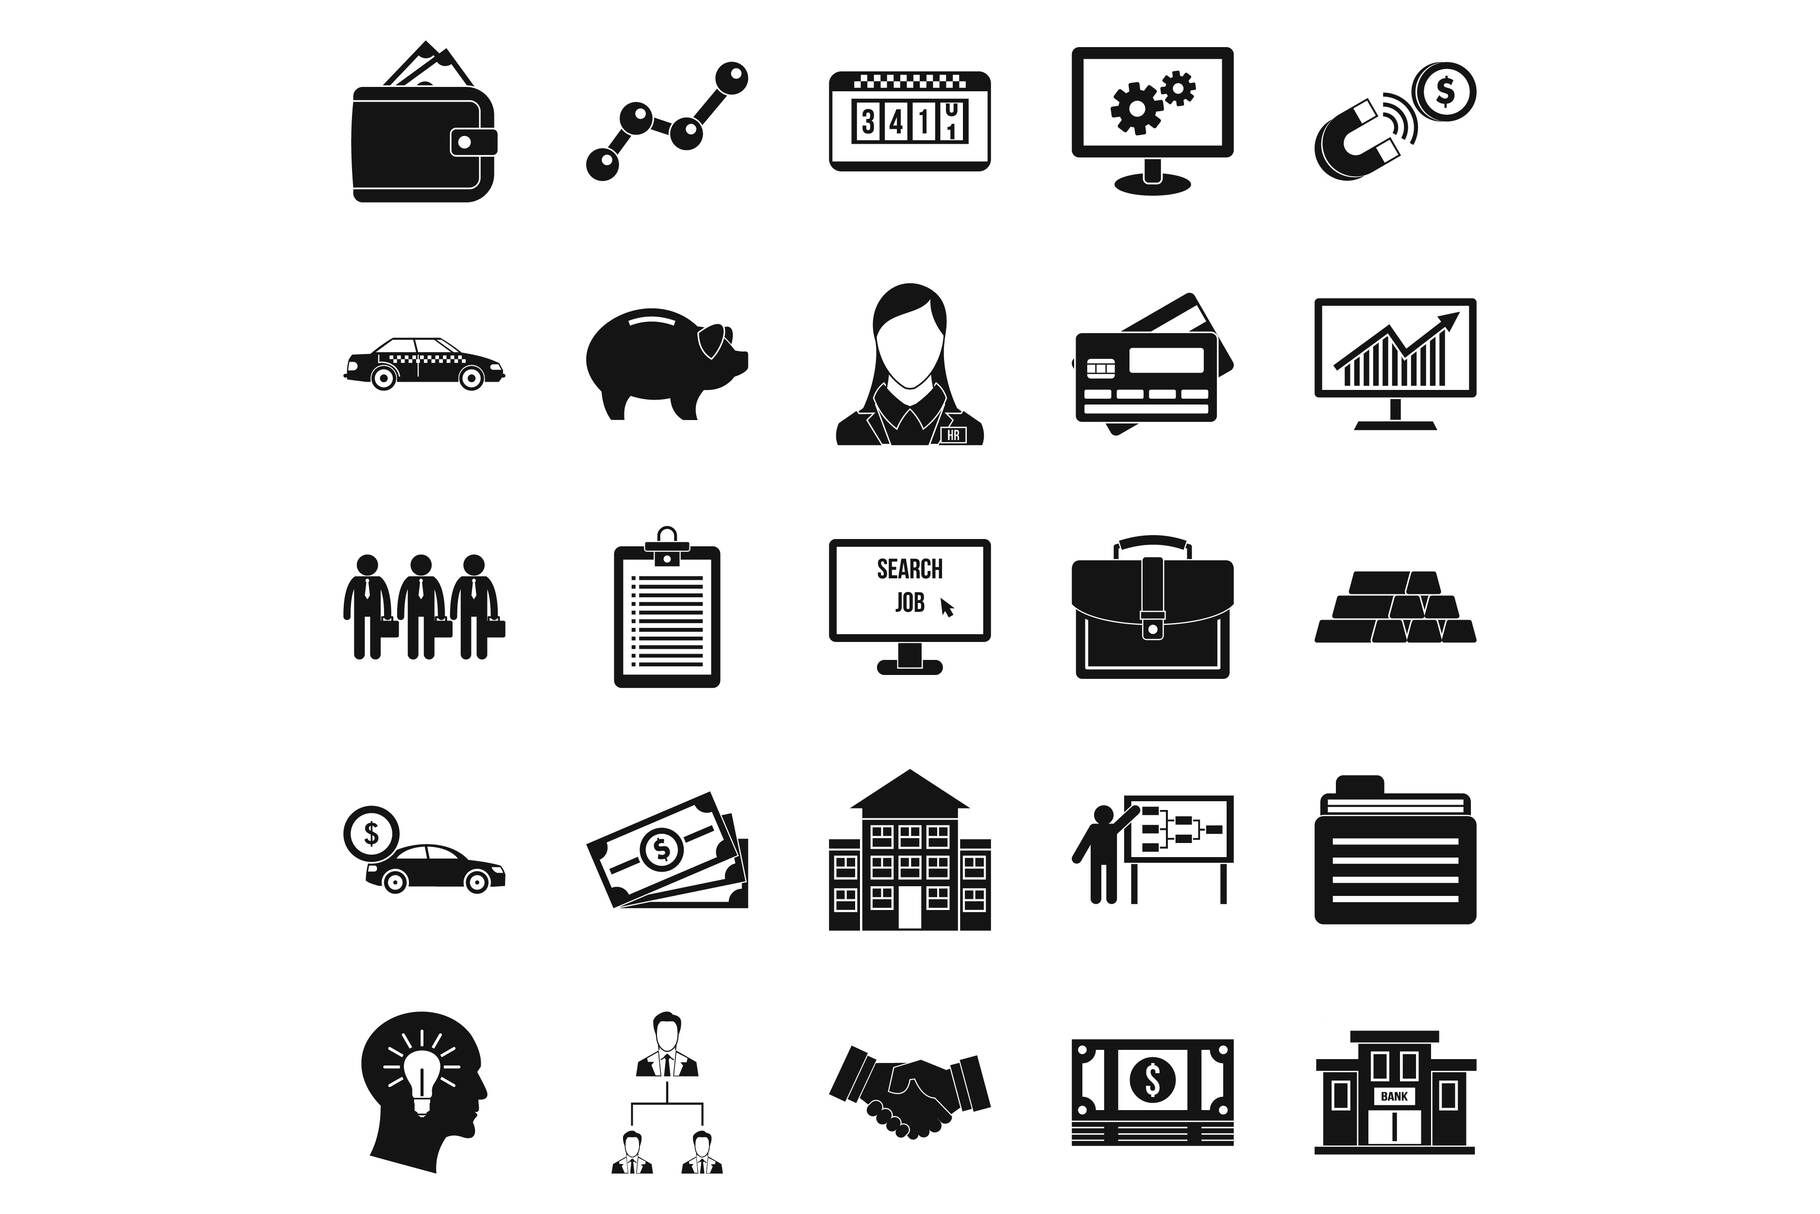 Working week icons set, simple style example image 1